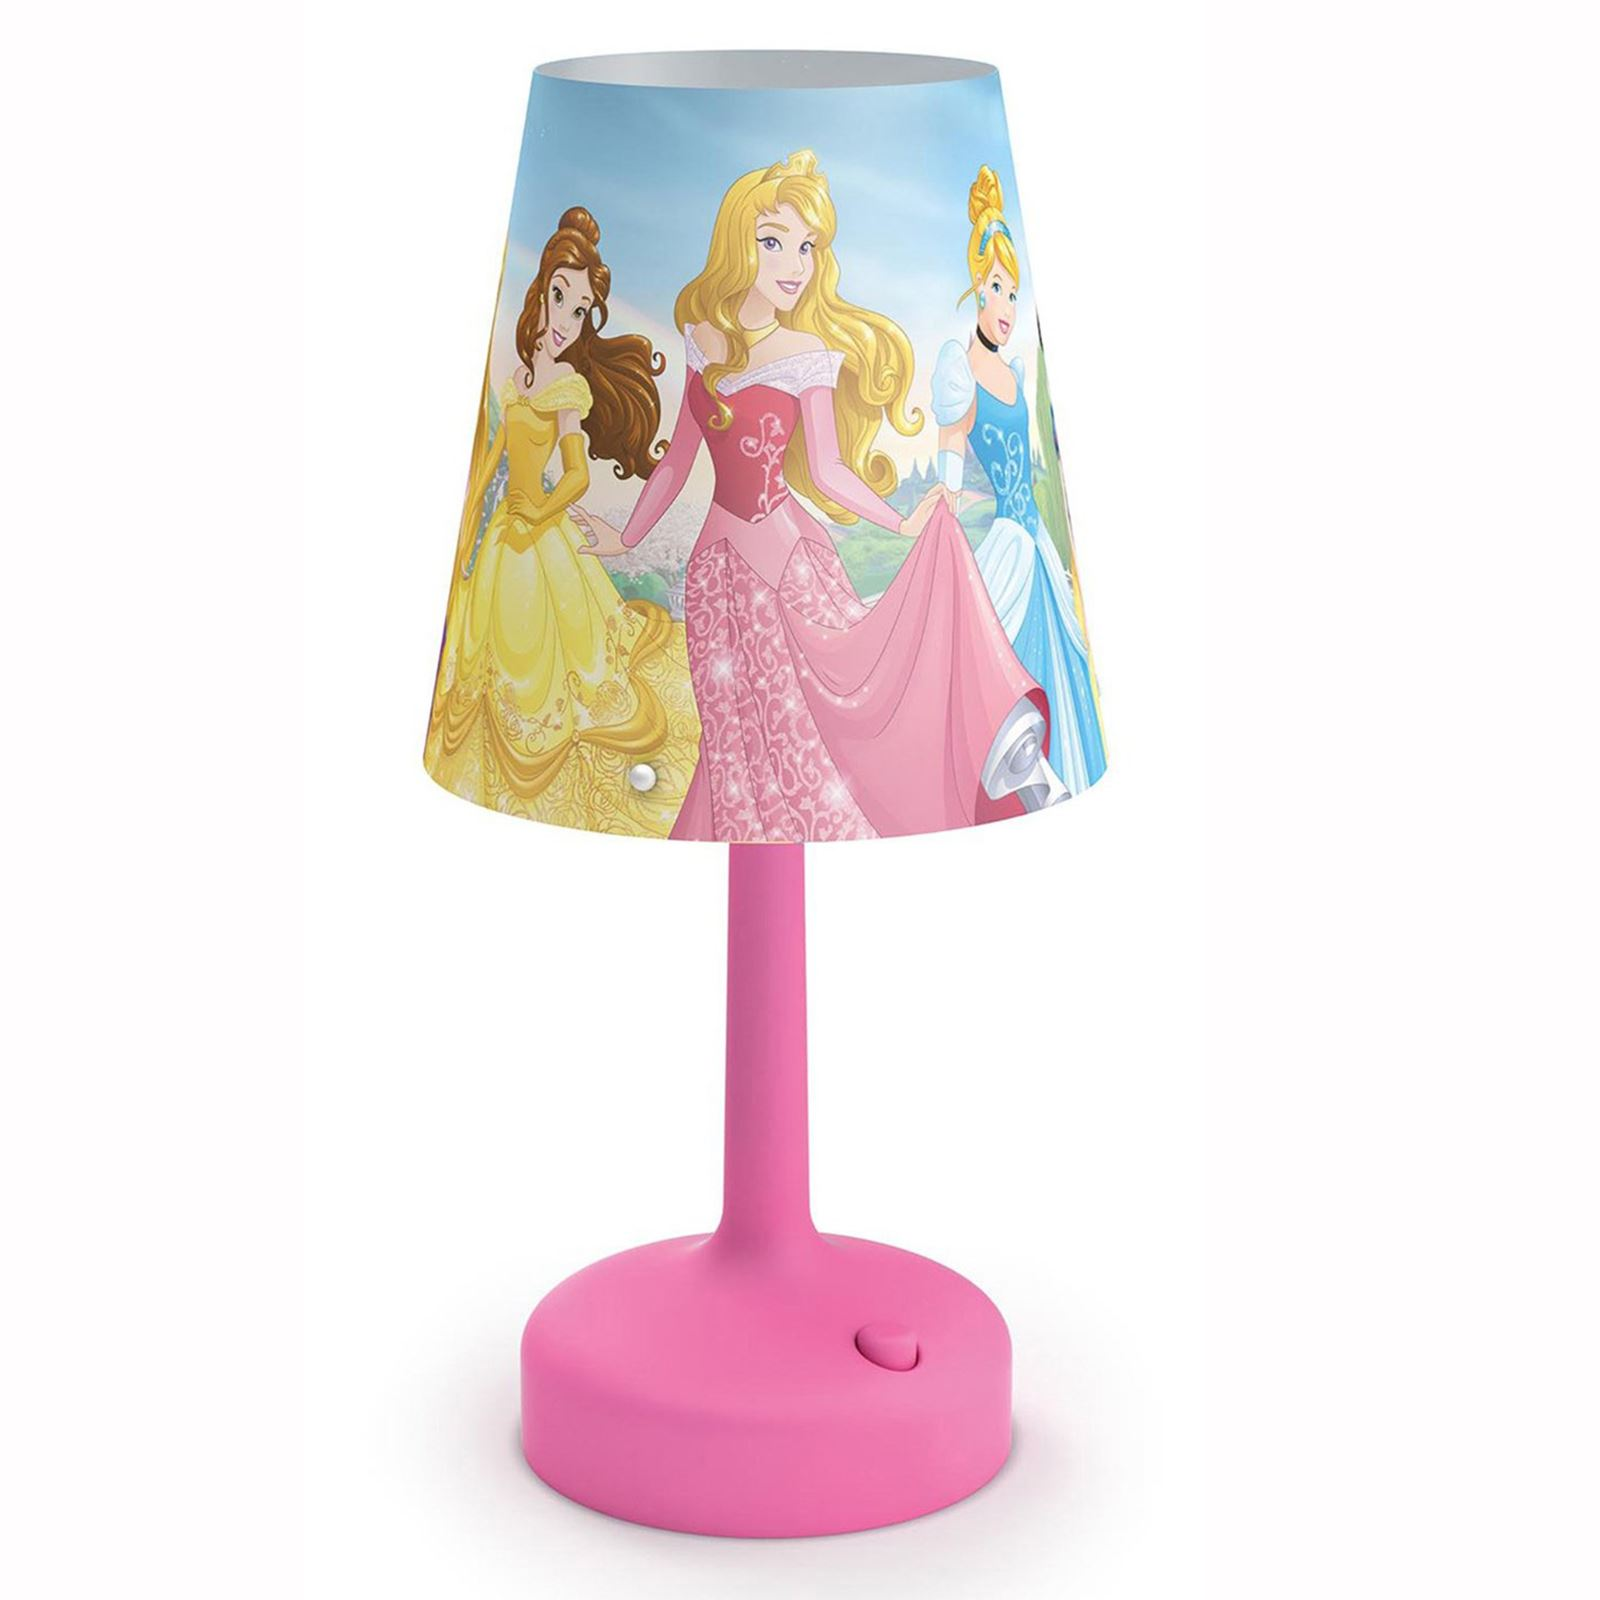 Disney Princess Portable Table Lamp Kids Bedroom Lighting